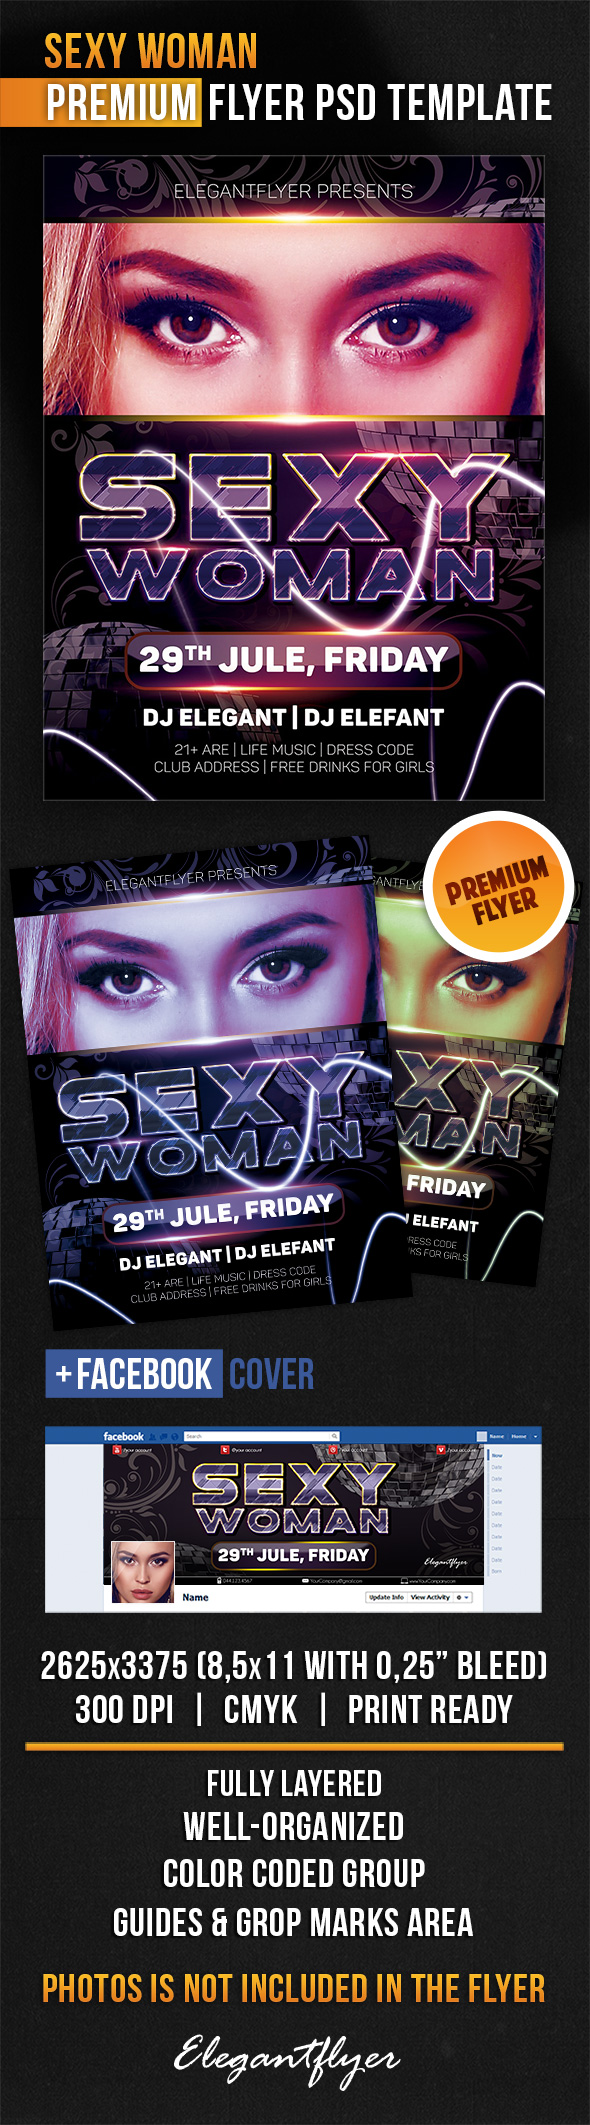 20 Free PSD Flyer Templates Women Images